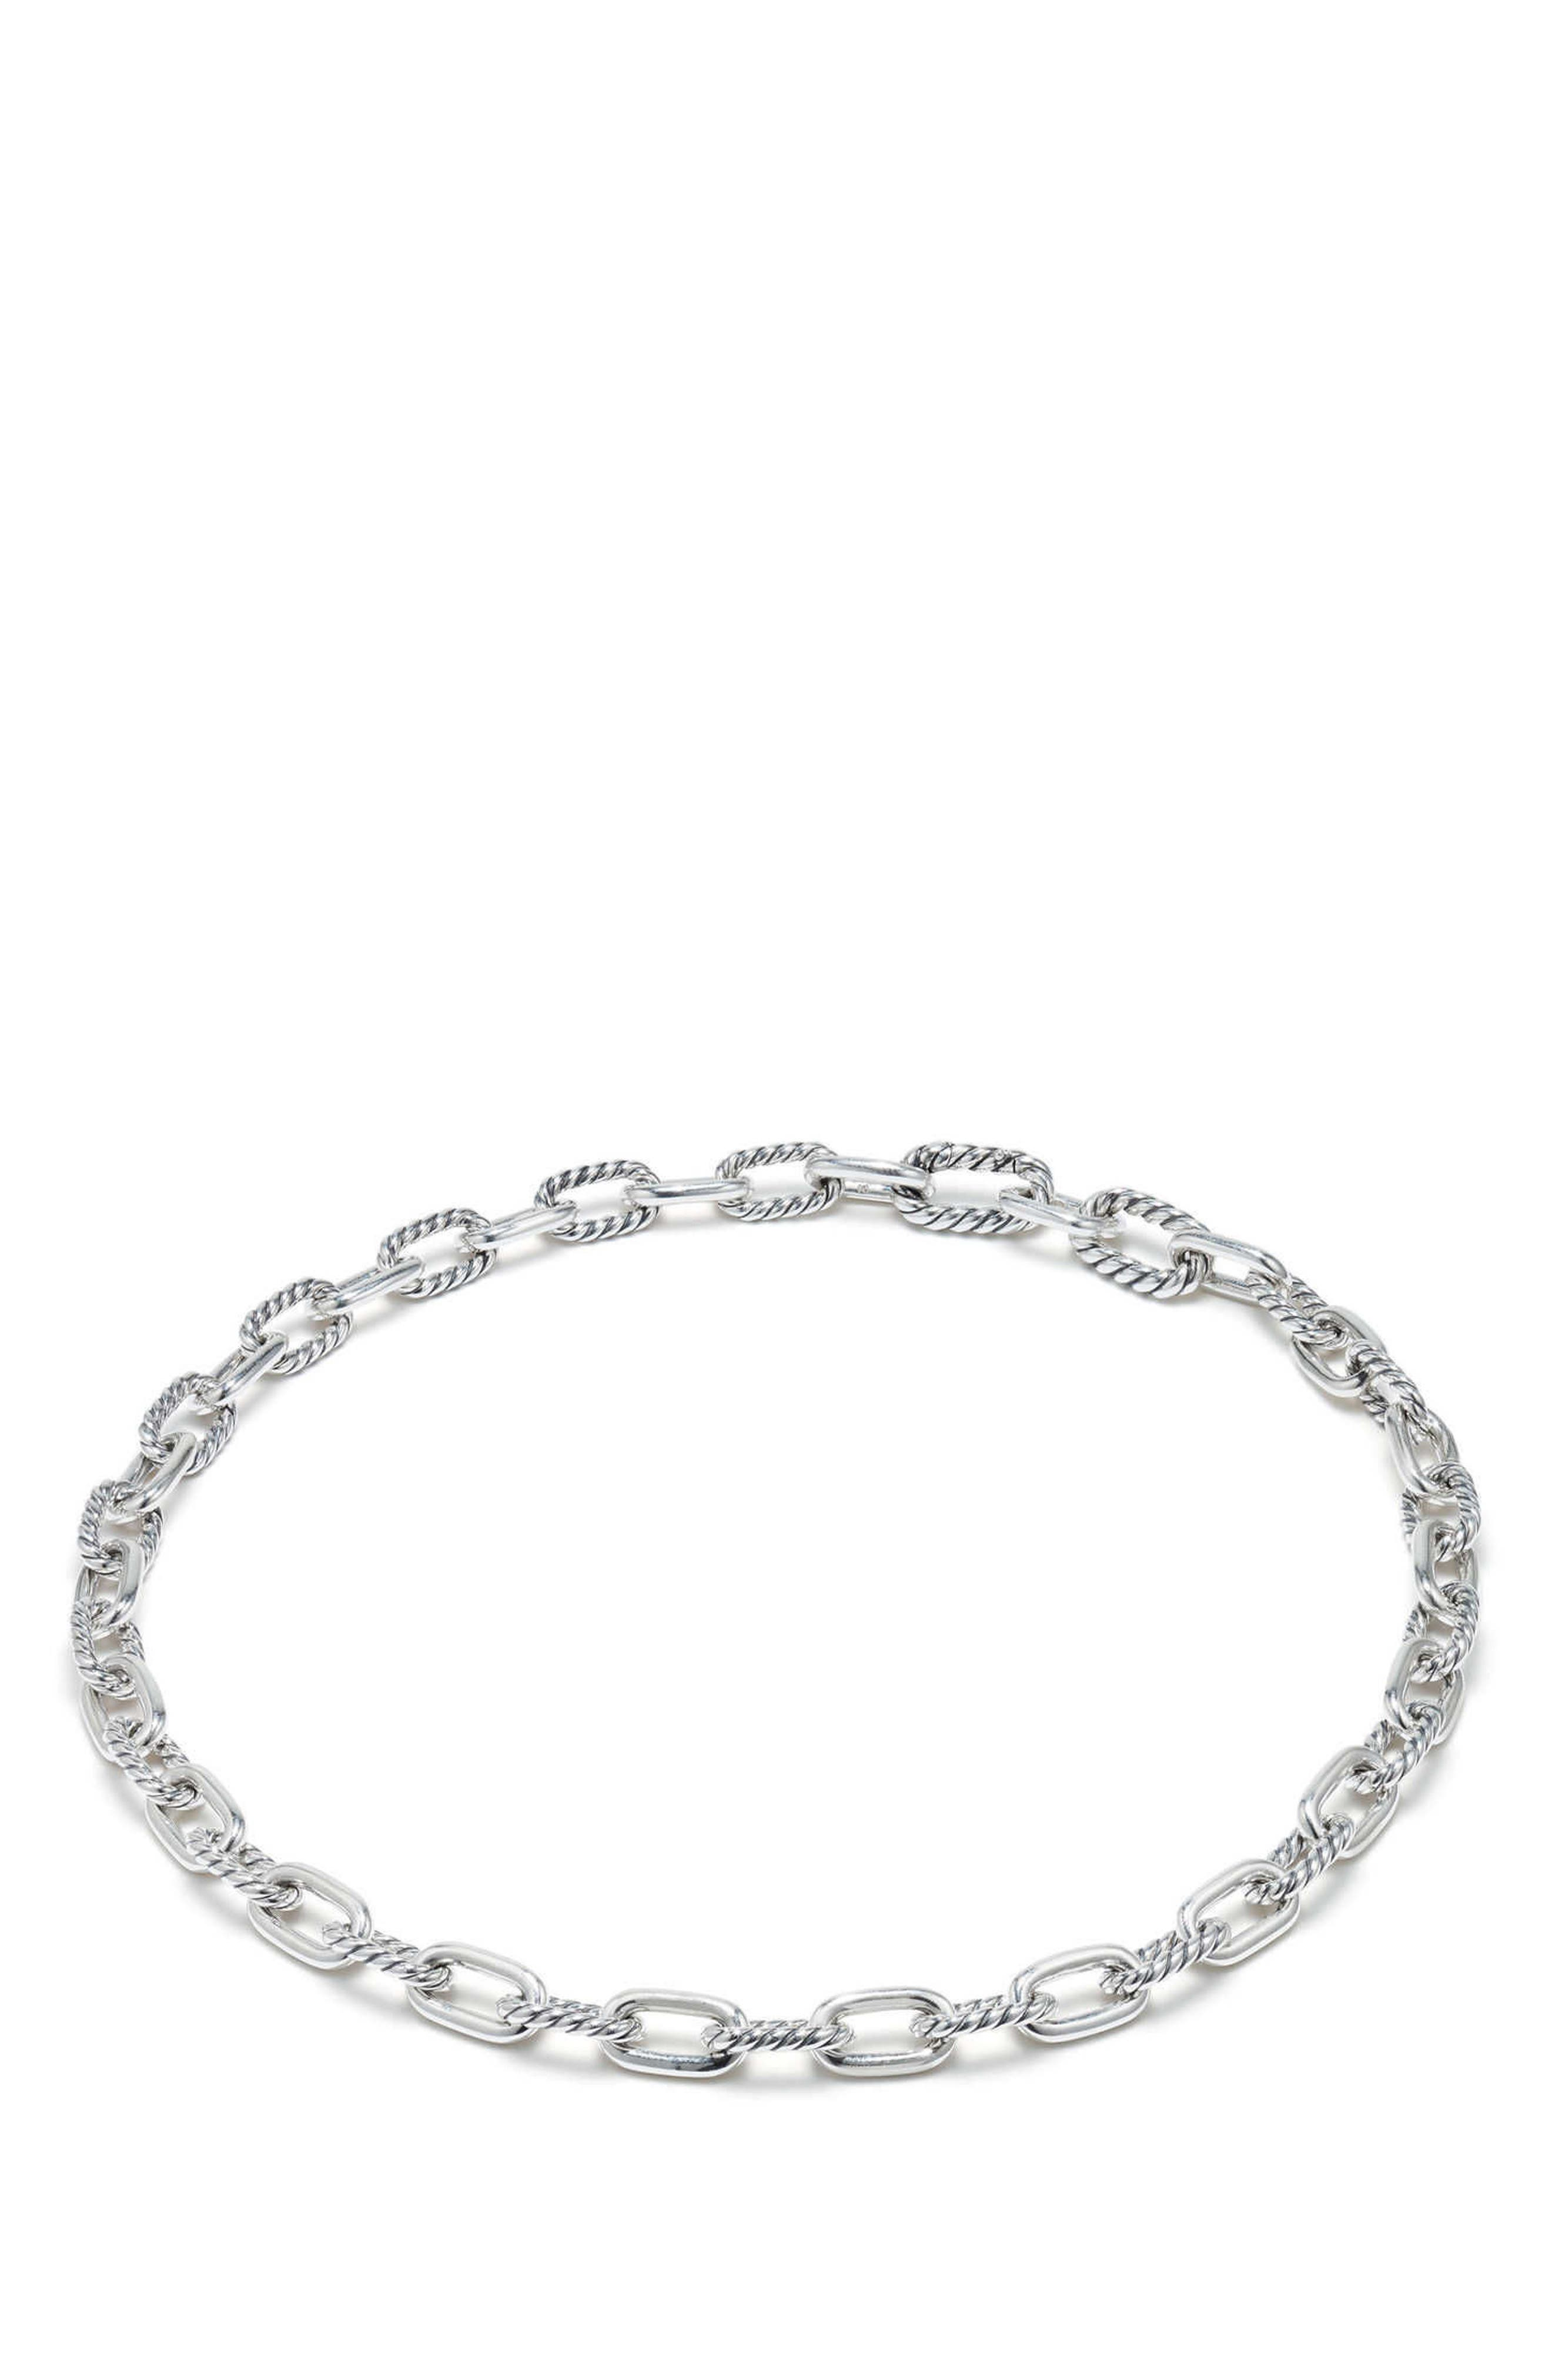 DY Madison Small Chain Necklace,                         Main,                         color, Silver